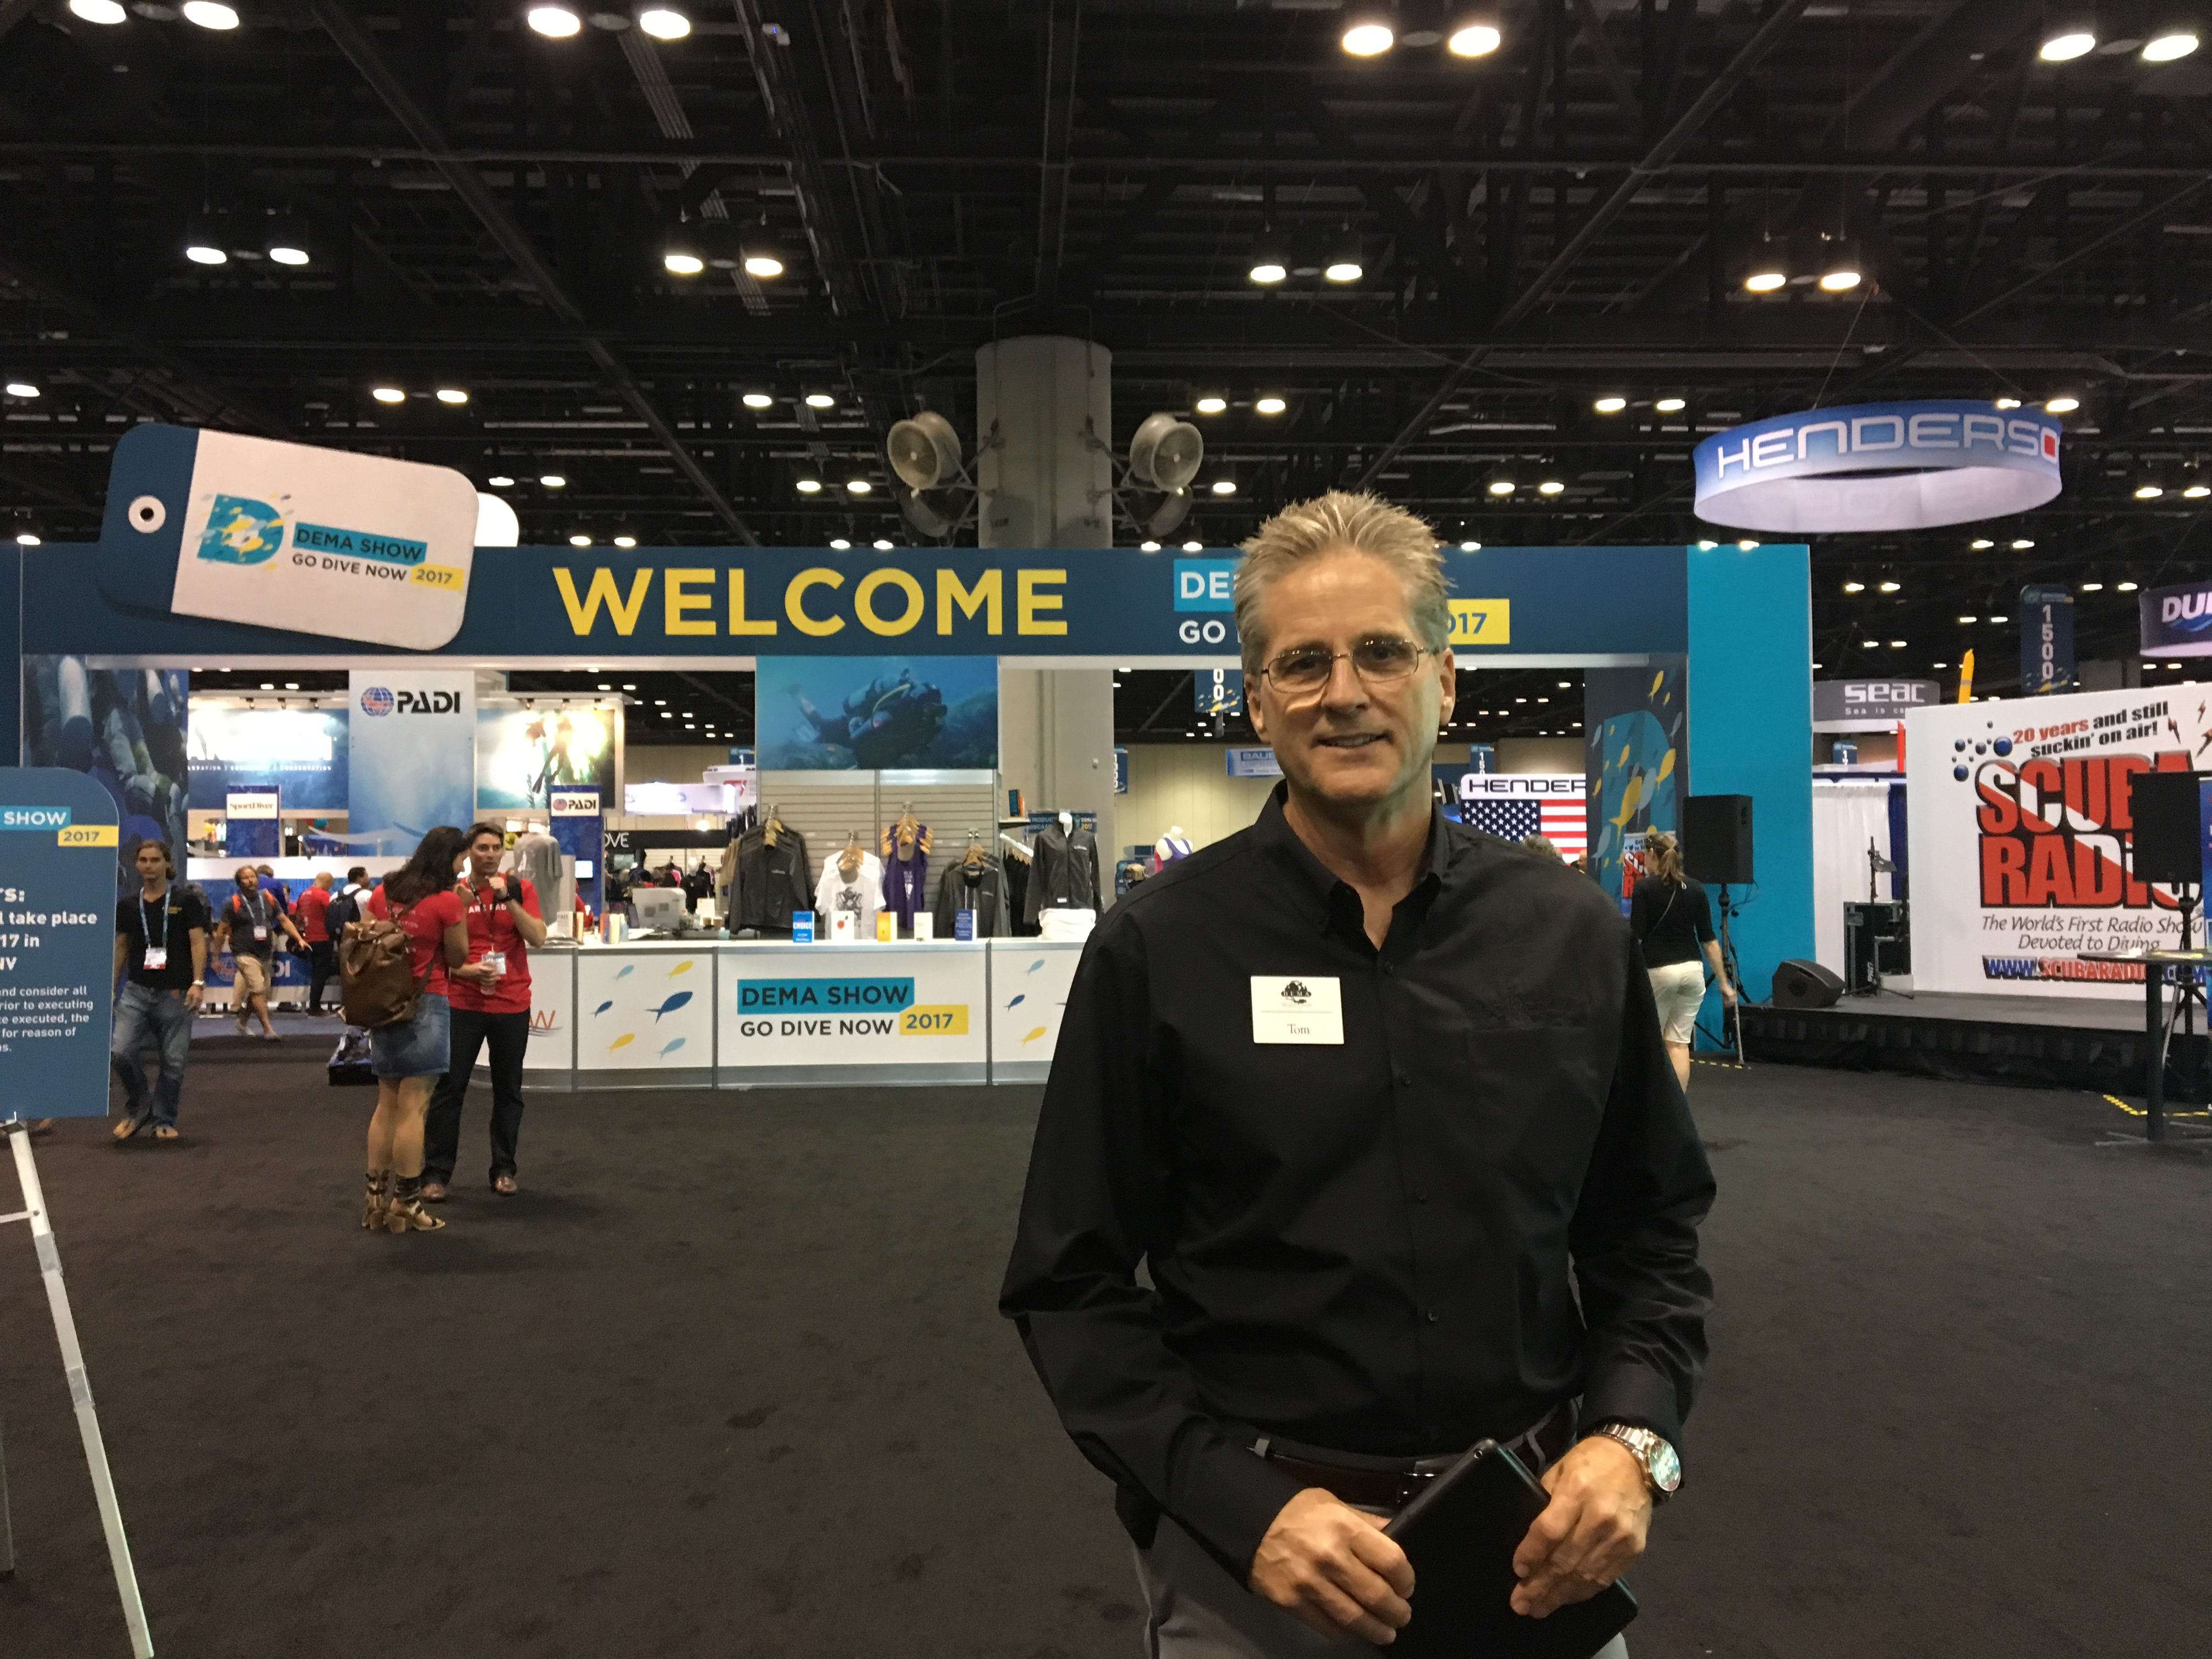 Recent Hurricanes Had A Minimal Impact On DEMA Show 2017 Attendance